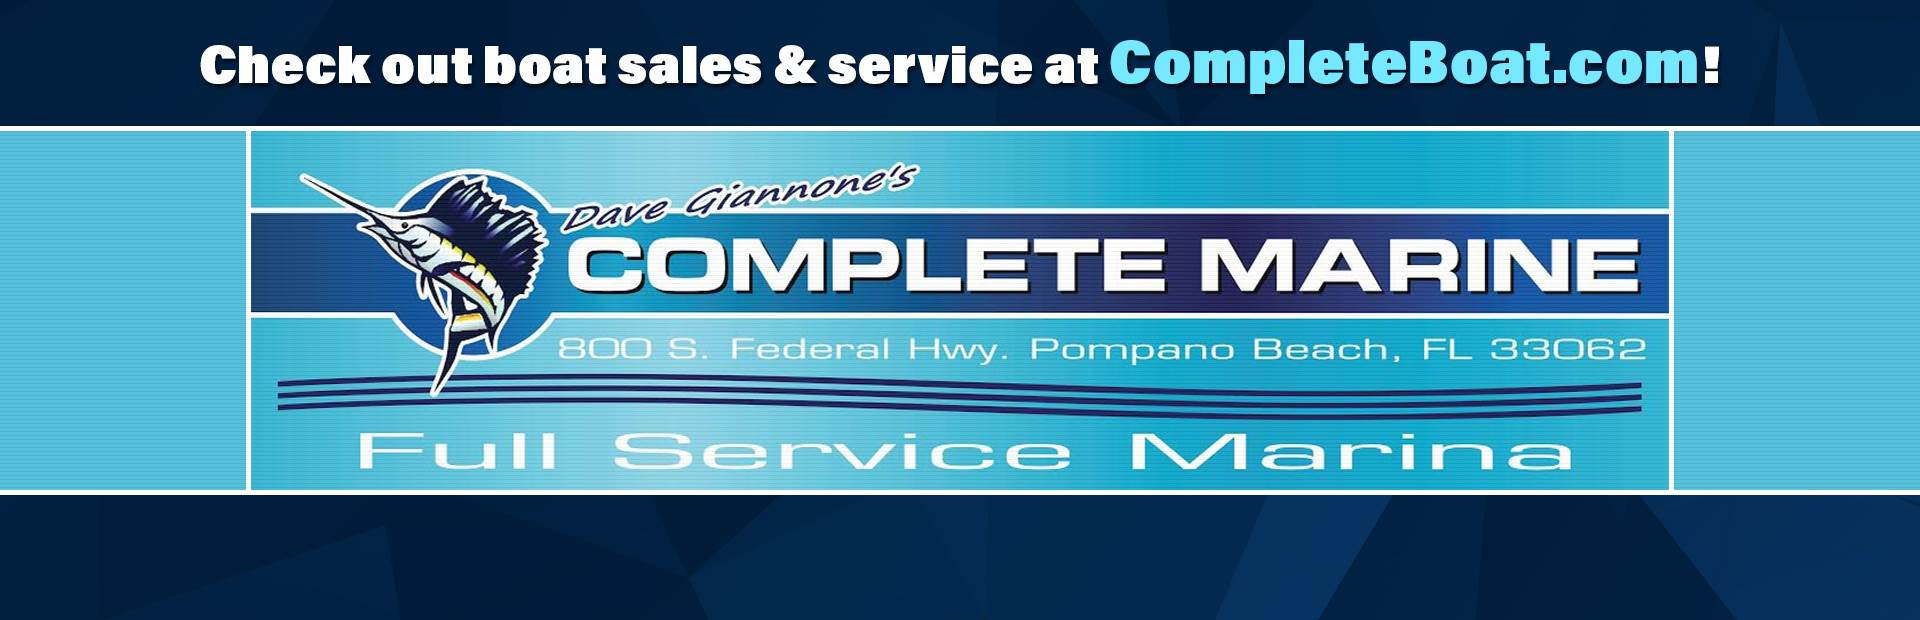 Check out boat sales and service at CompleteBoat.com!